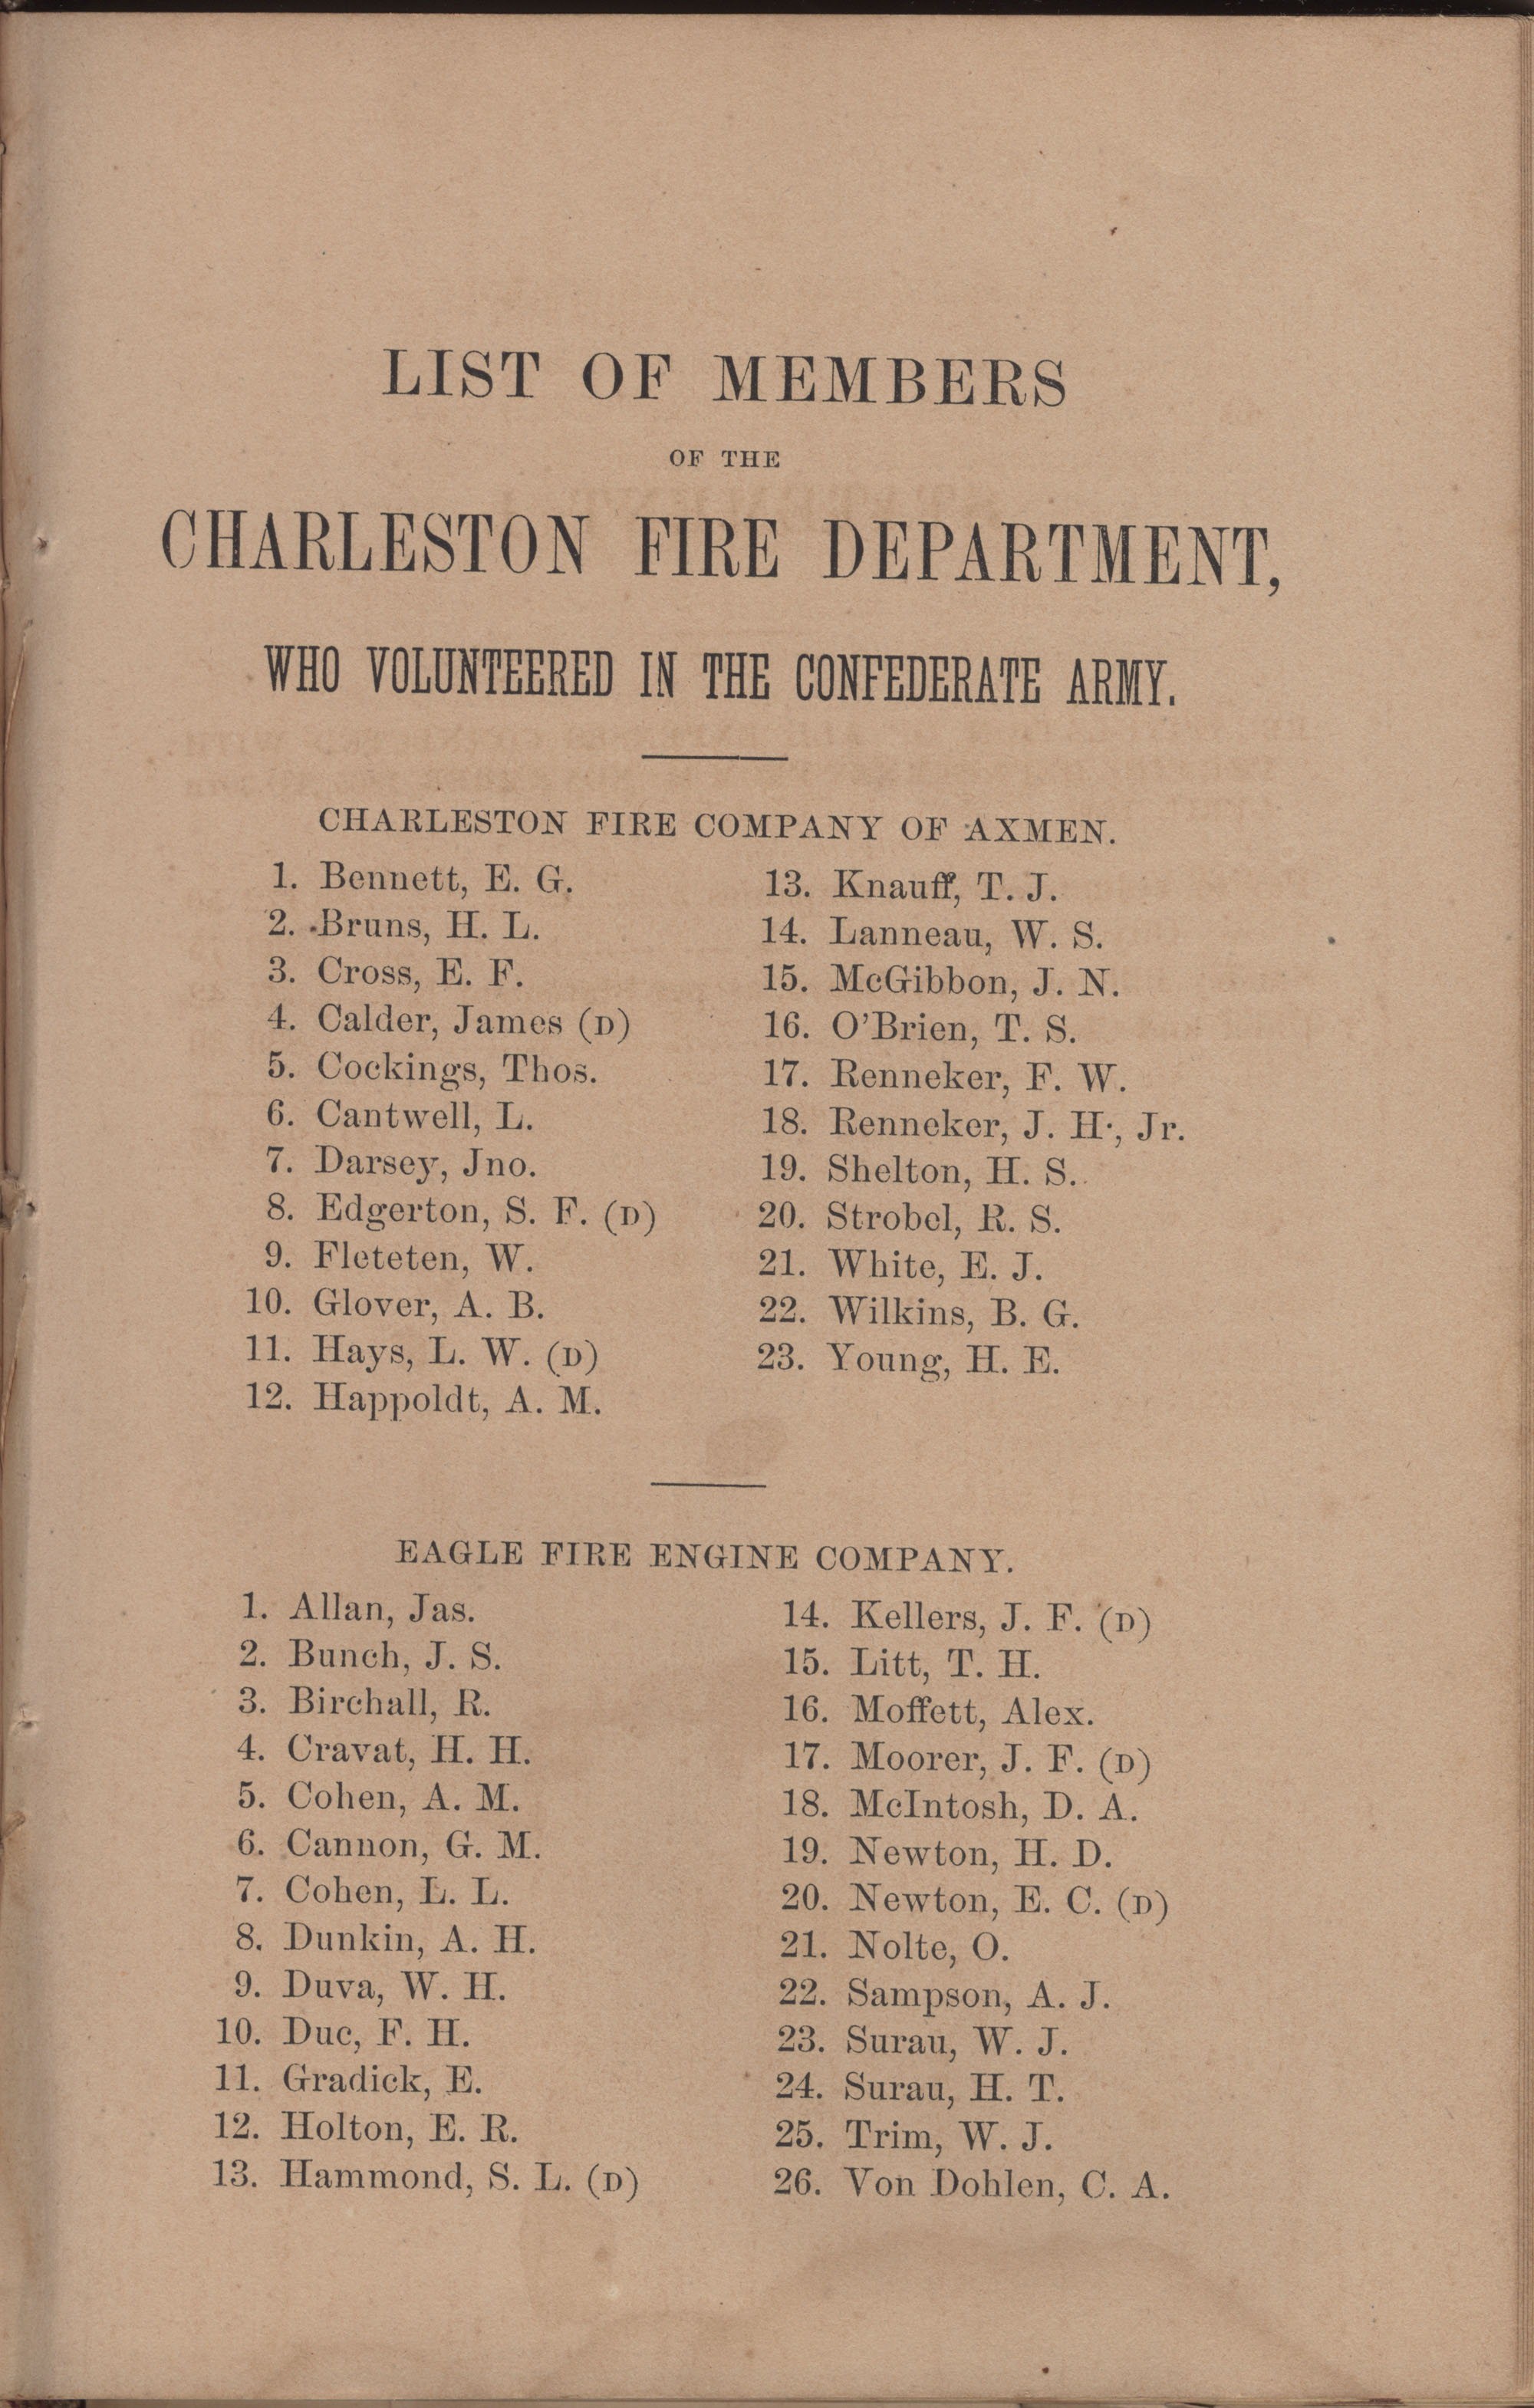 Annual Report of the Chief of the Fire Department of the City of Charleston, page 135